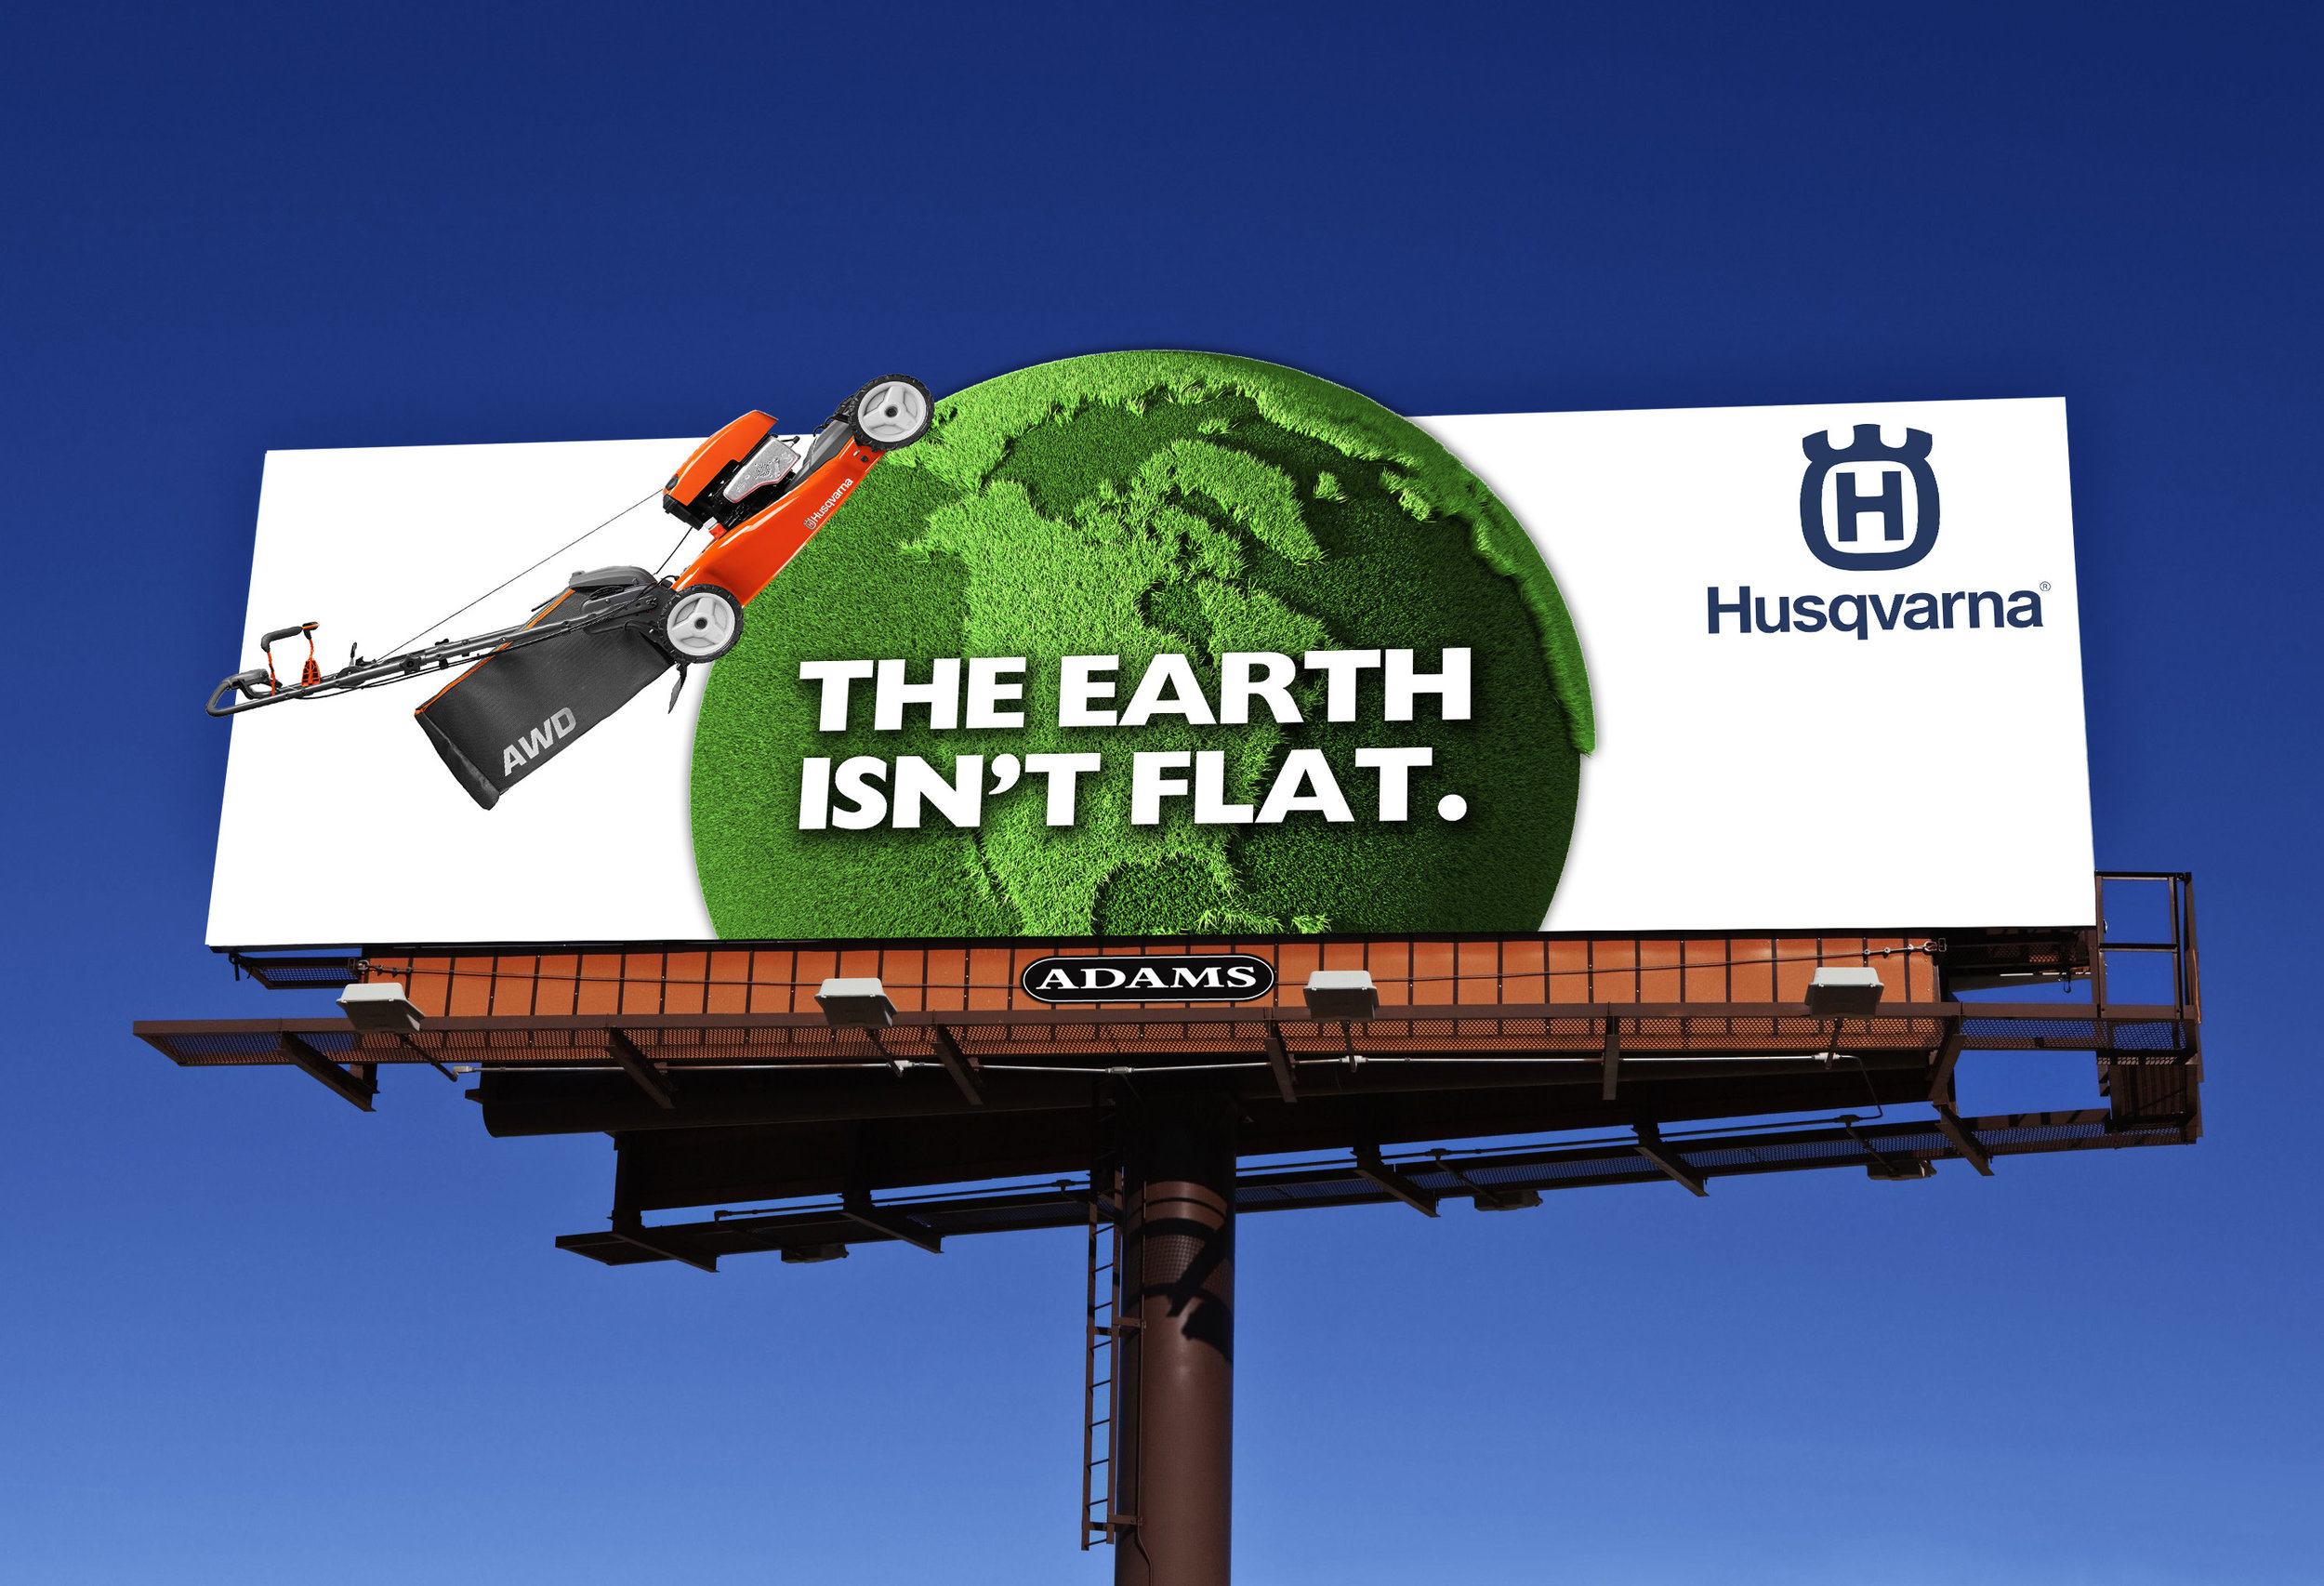 Husqvarna2016_Earth.jpg